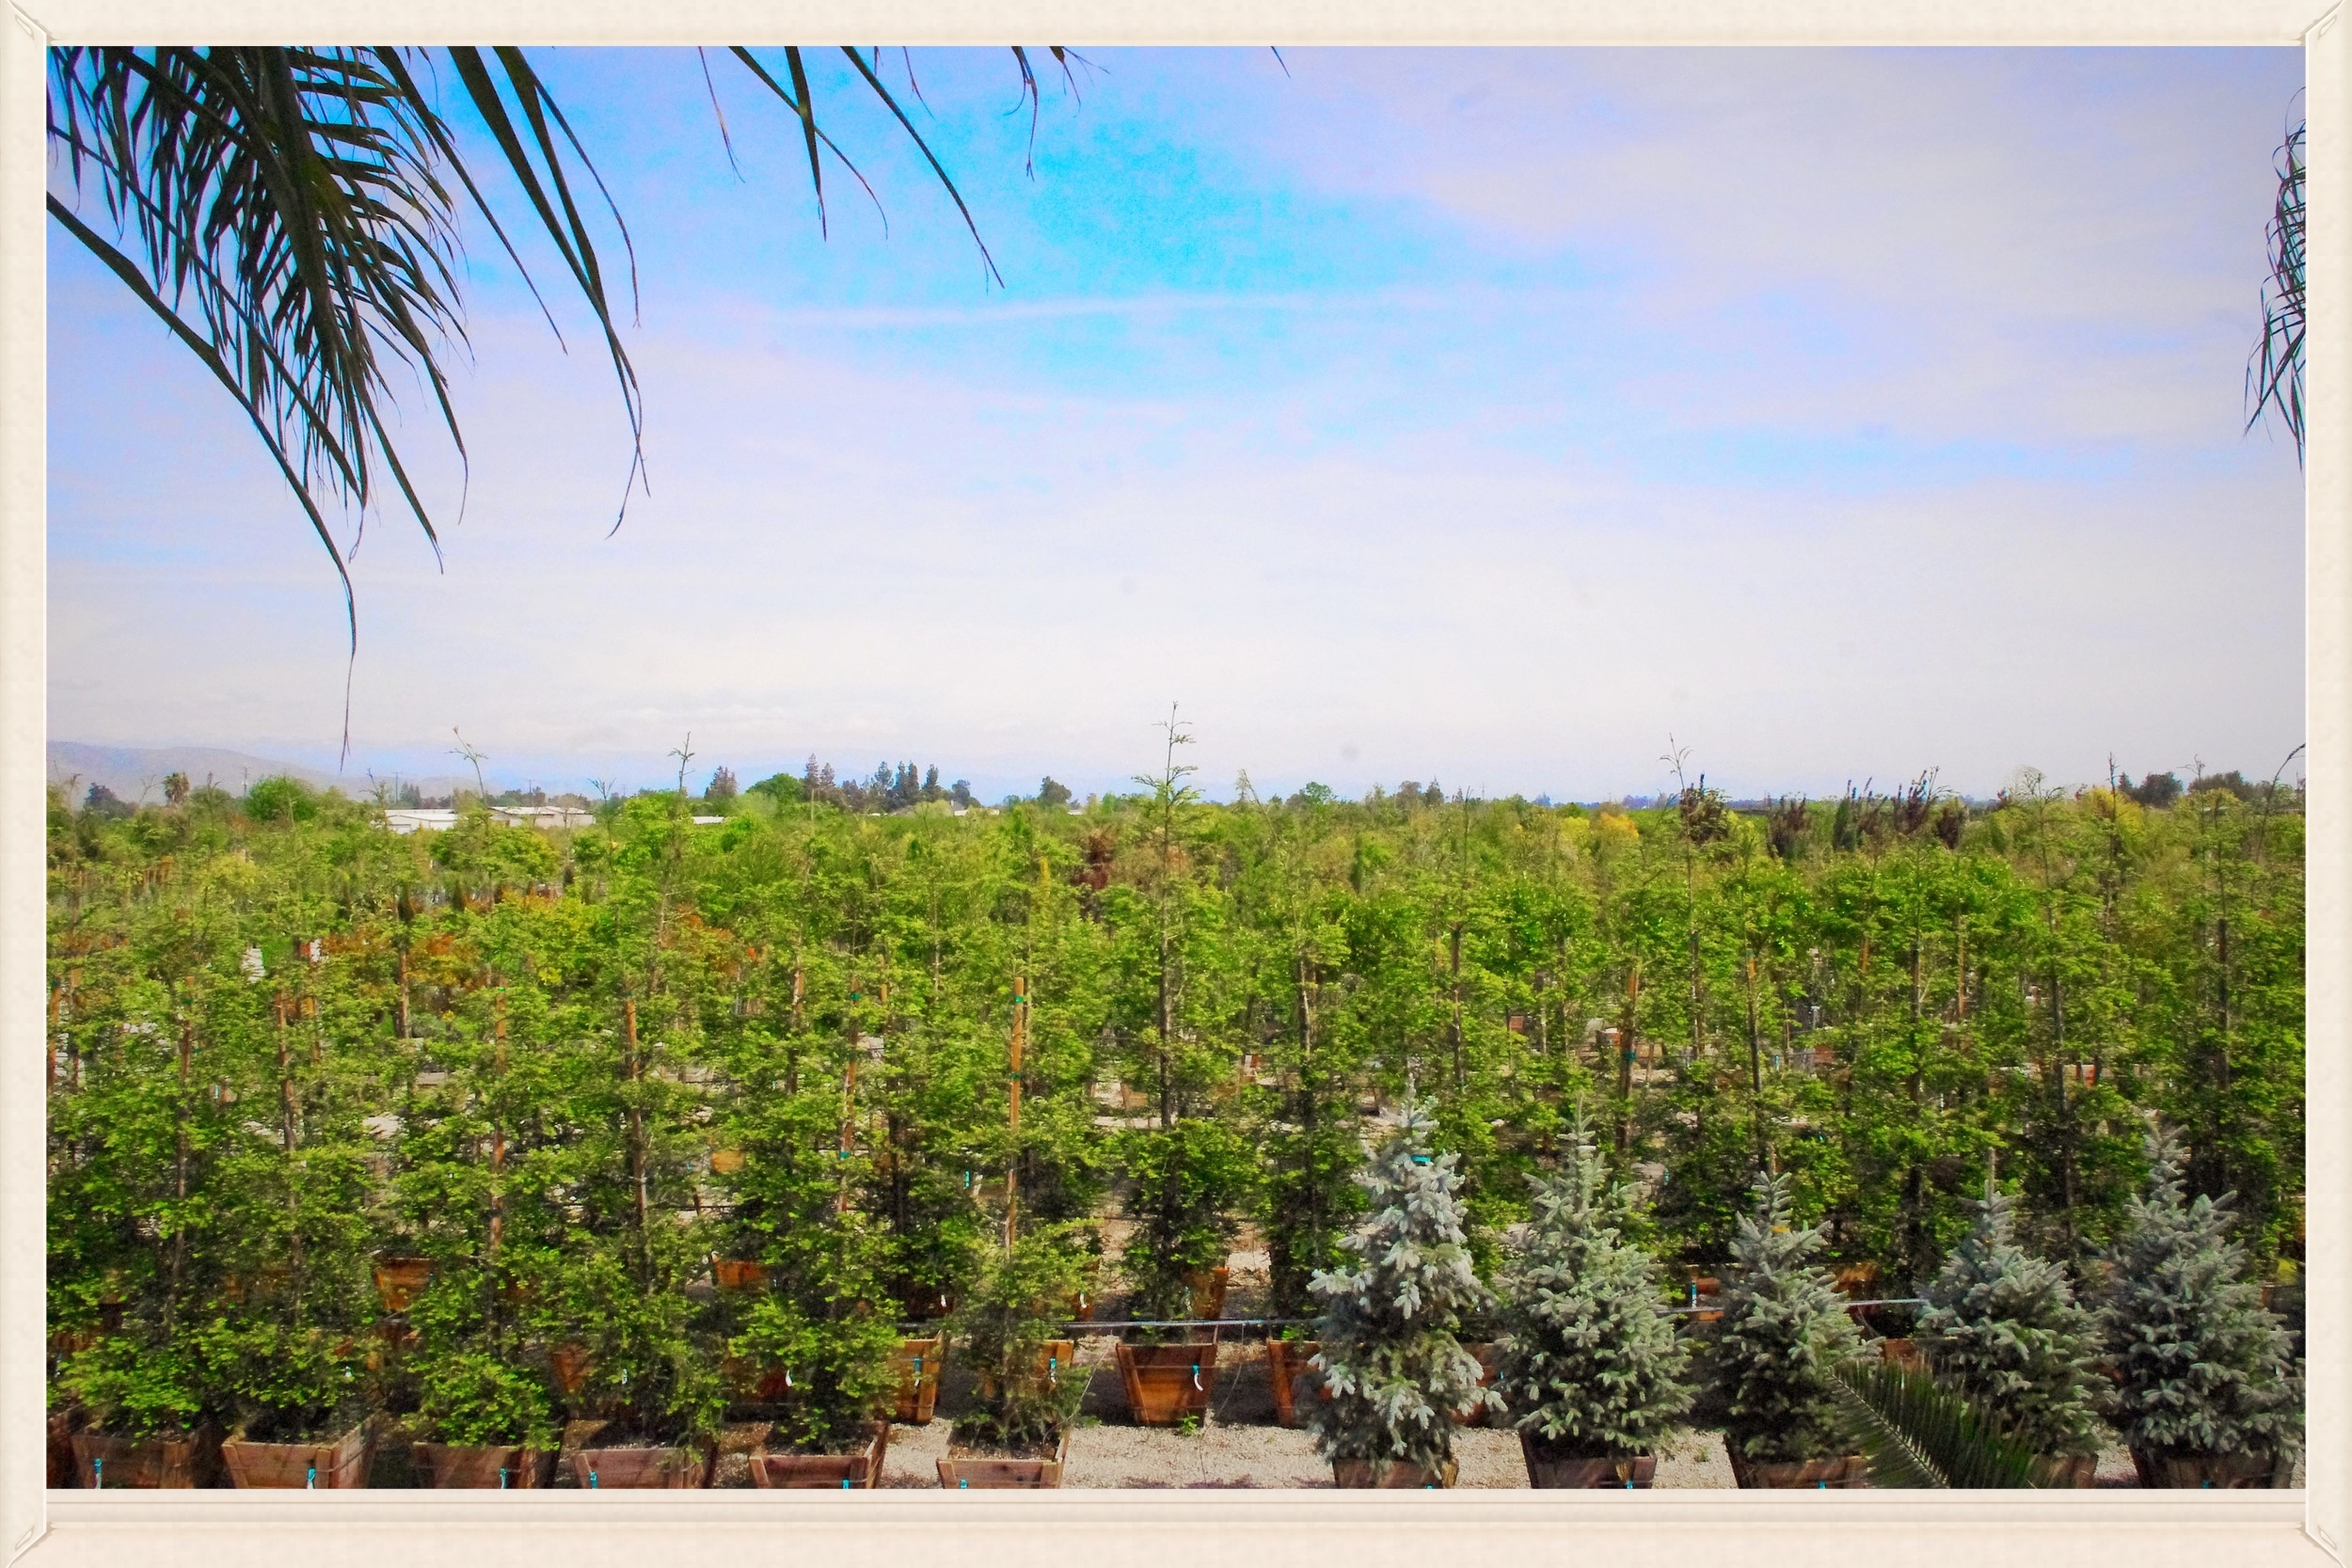 Willow Gardens Nursery has a full stock of boxed and mature trees